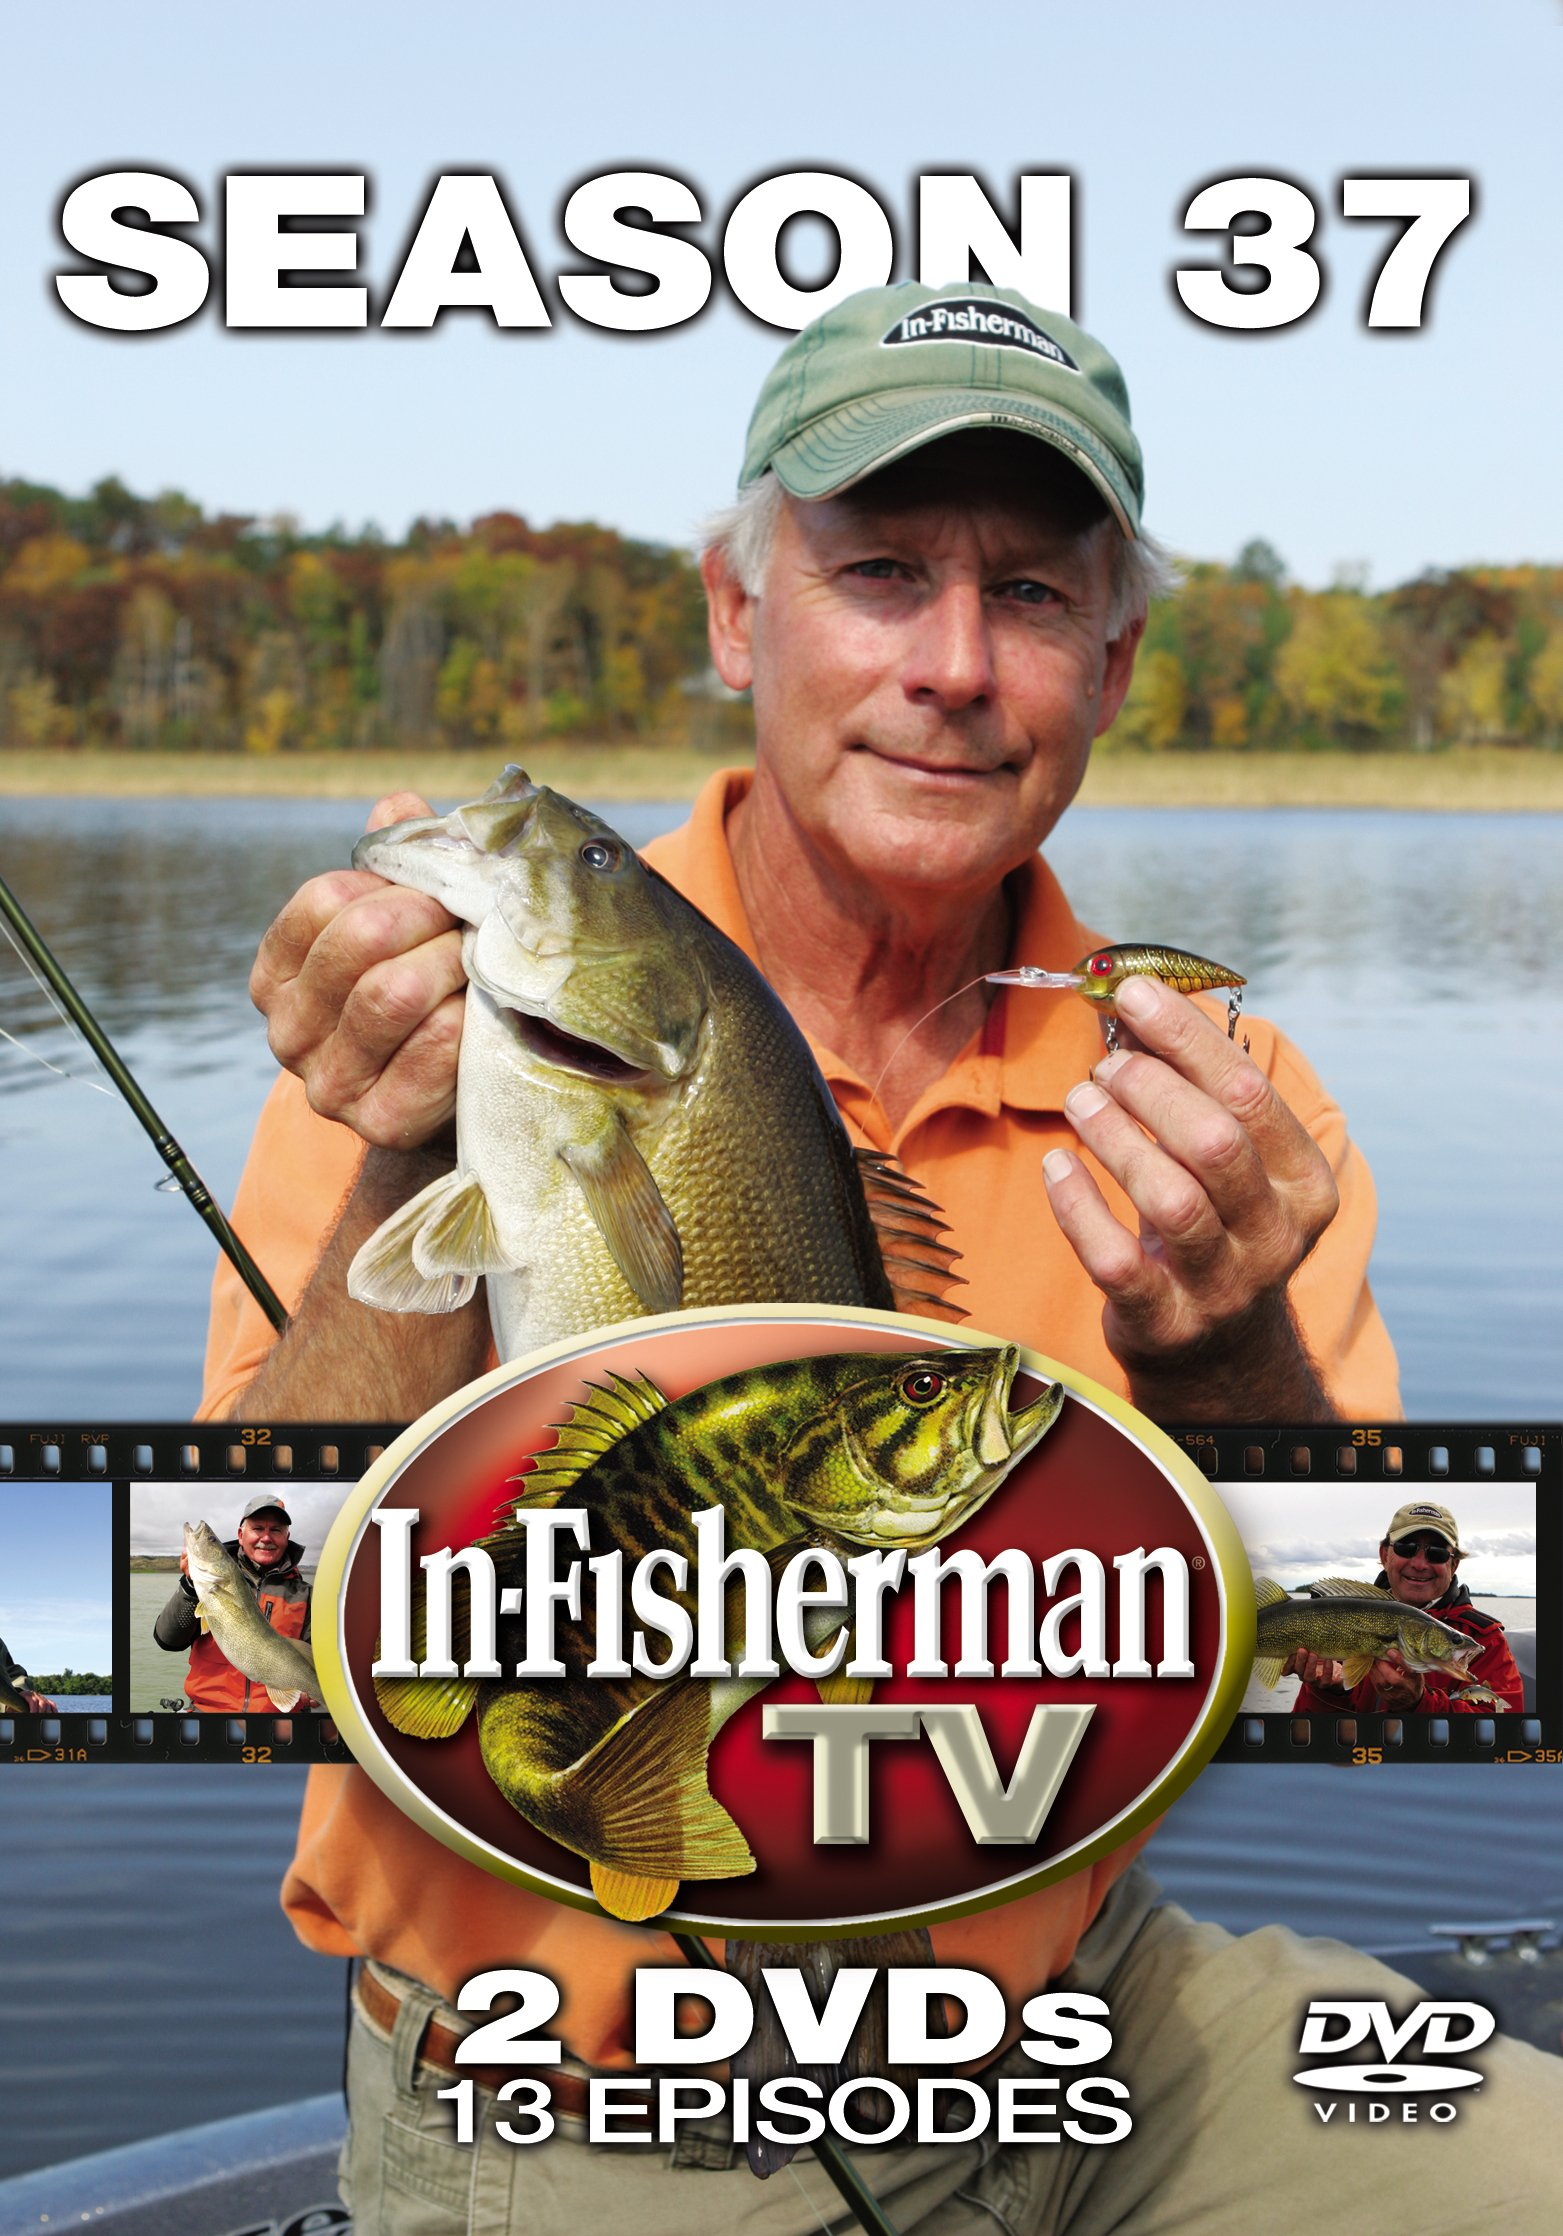 In-Fisherman TV Season 37 (2012) 2 DVD Set by In-Fisherman